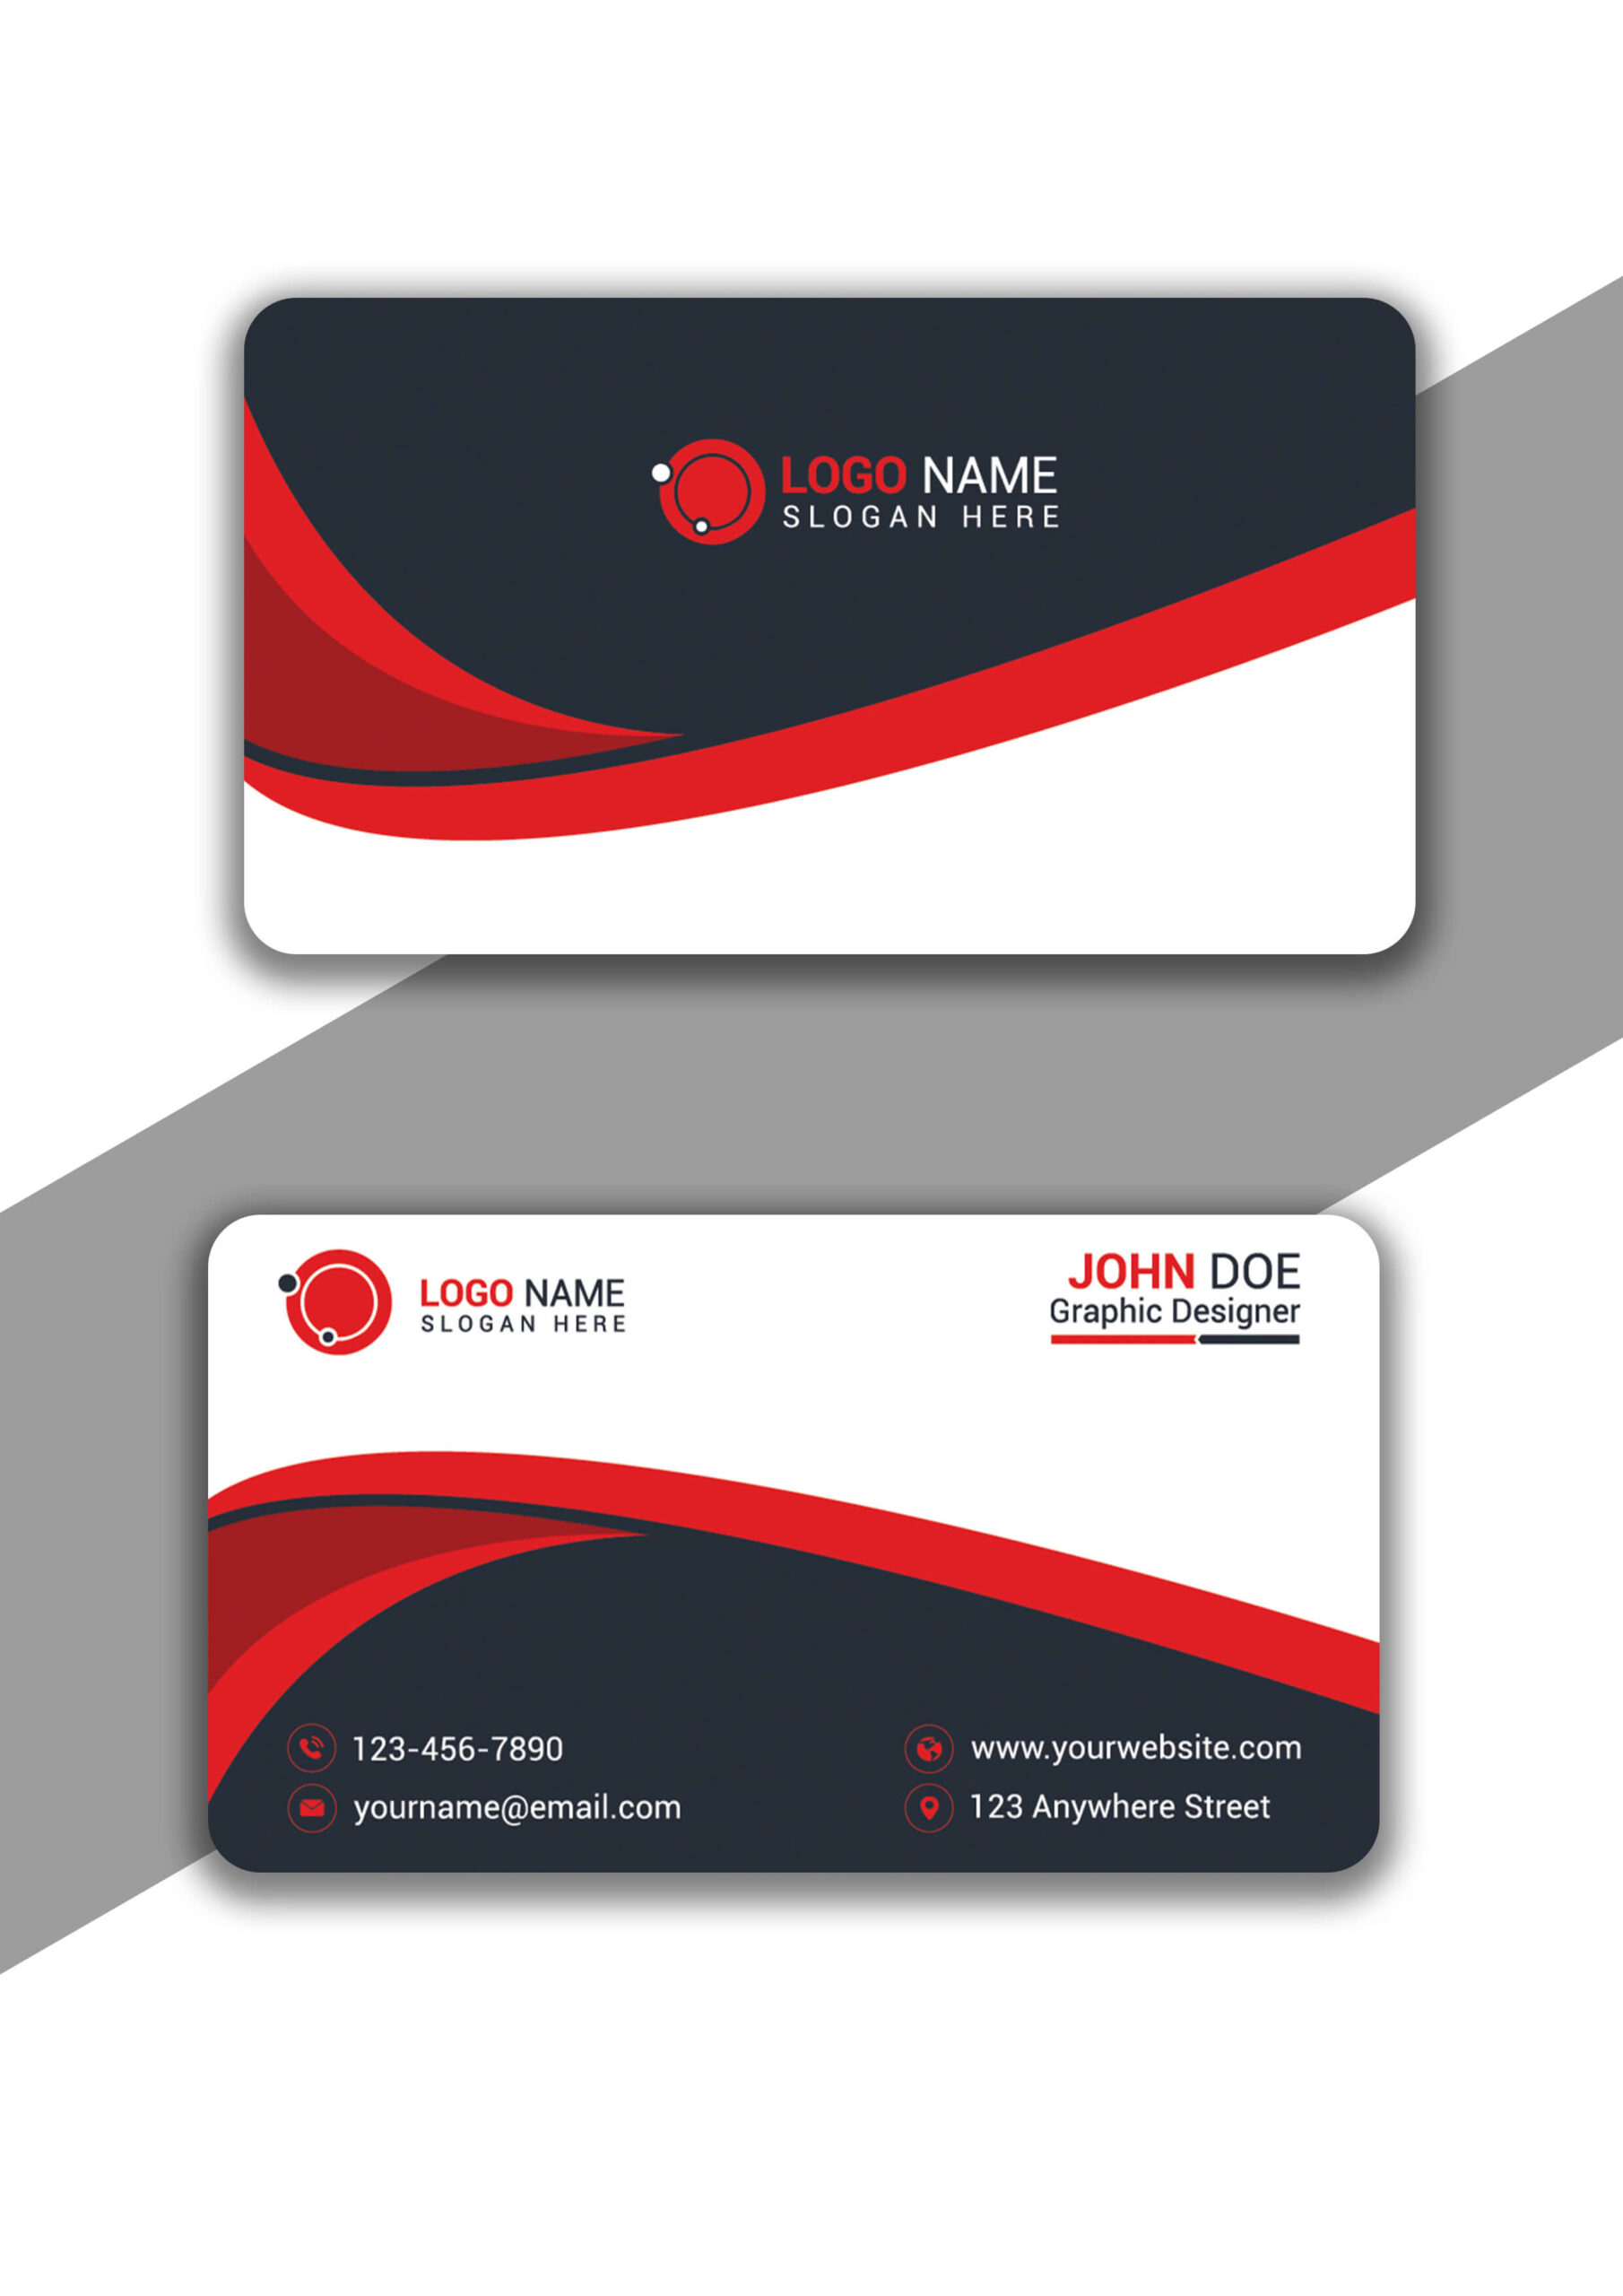 Red and Dark Gray Curvy Business Card Design in Illustrator